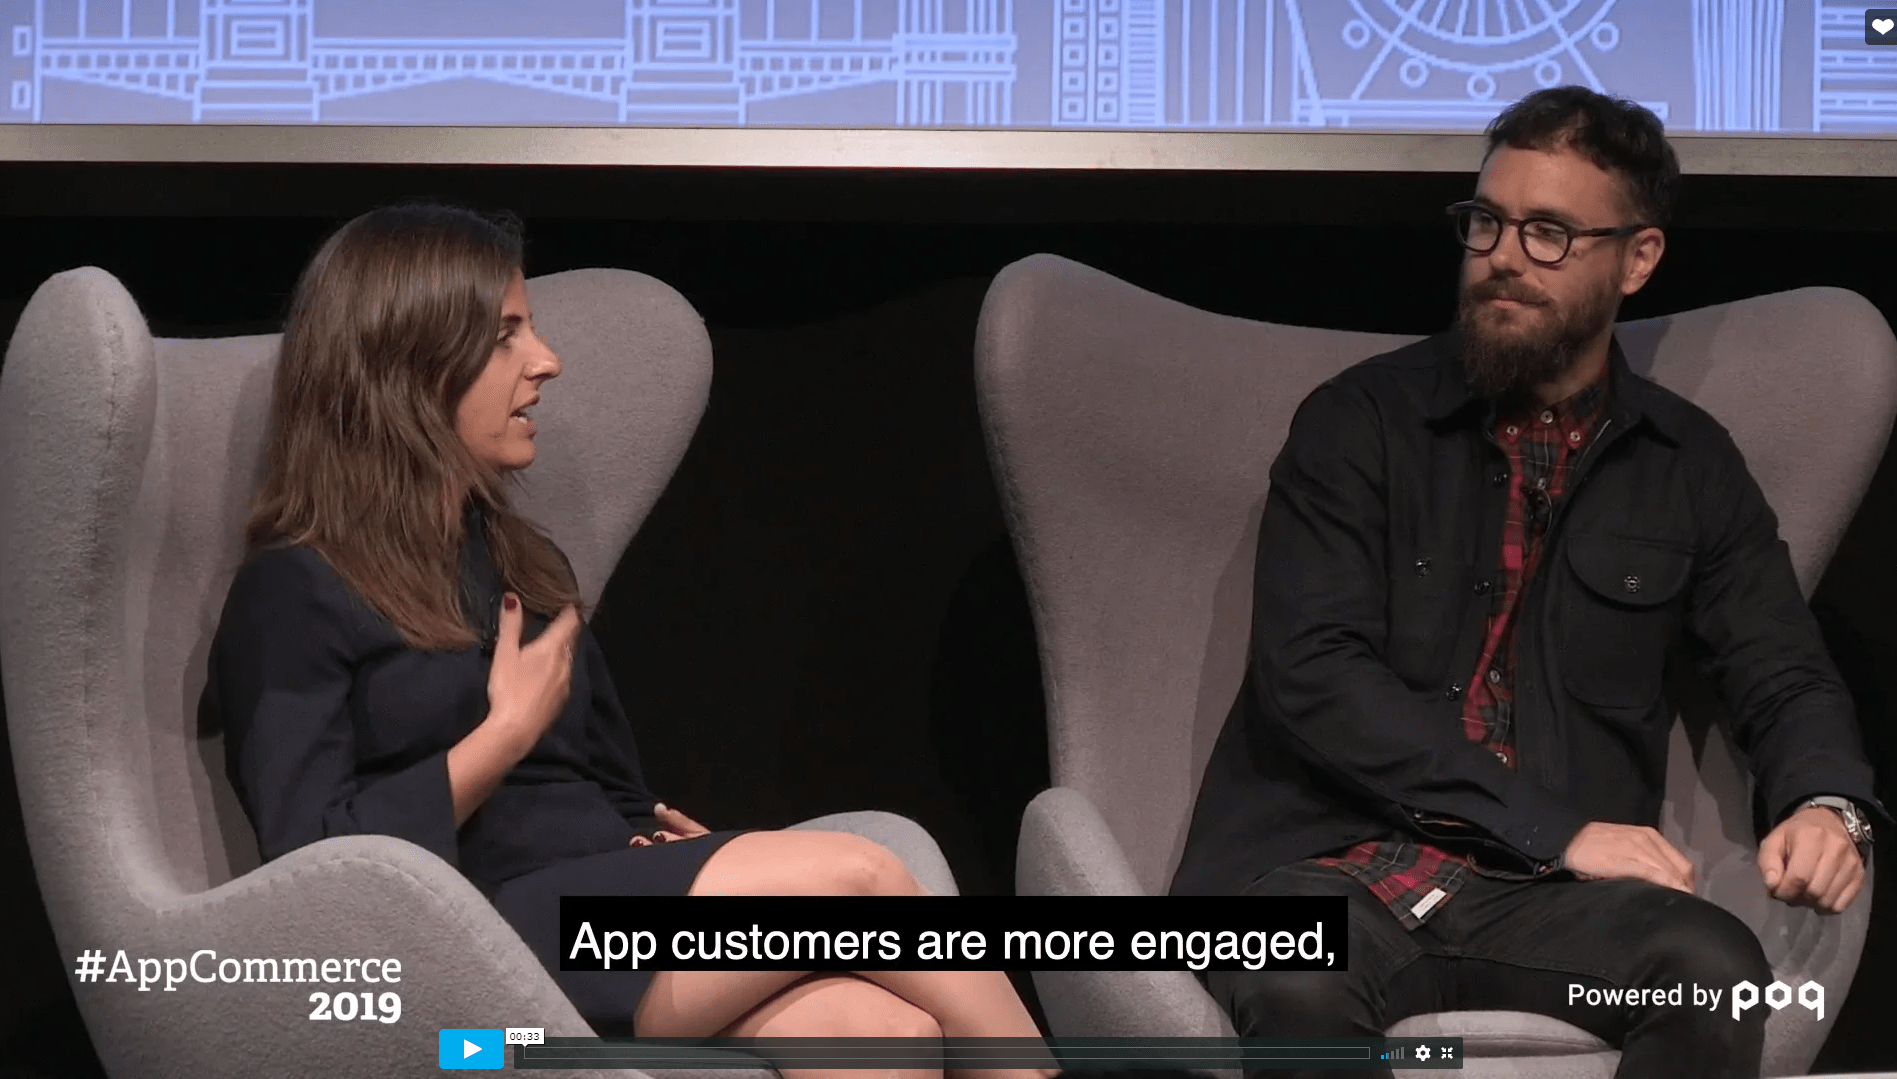 To hear more abong apps to grow customer loyalty check out the loyalty panel discussion, Maximise your app: The channel for loyalty, from Poq's annual event #AppCommerce 2019. You will hear from the likes of Zalando, Quiz Clothing, and Neal's Yard Remedies.